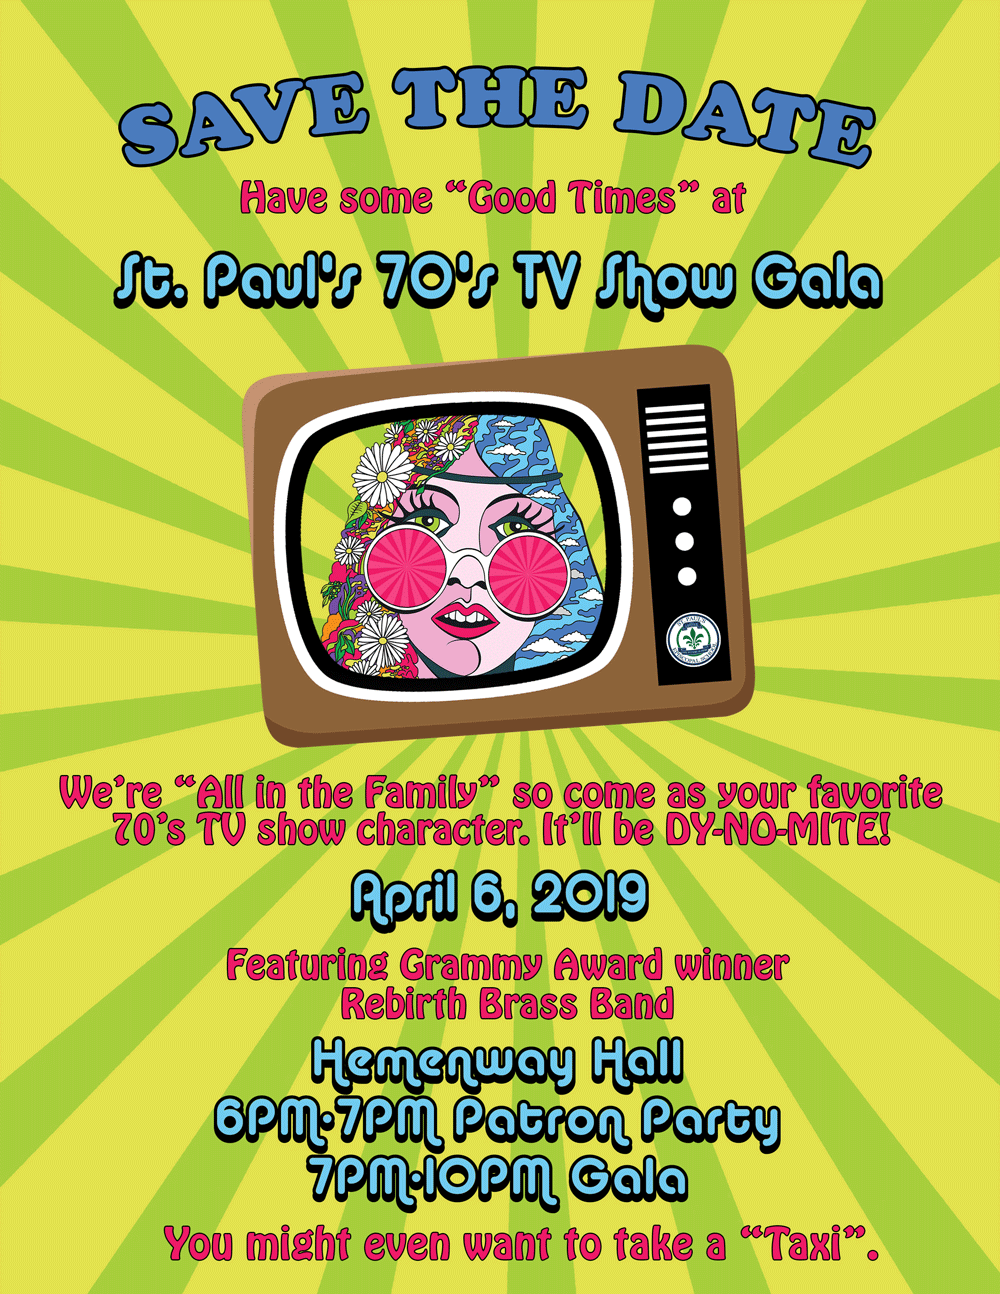 Save the Date St. Paul's 70s TV Show Gala April 6, 2019